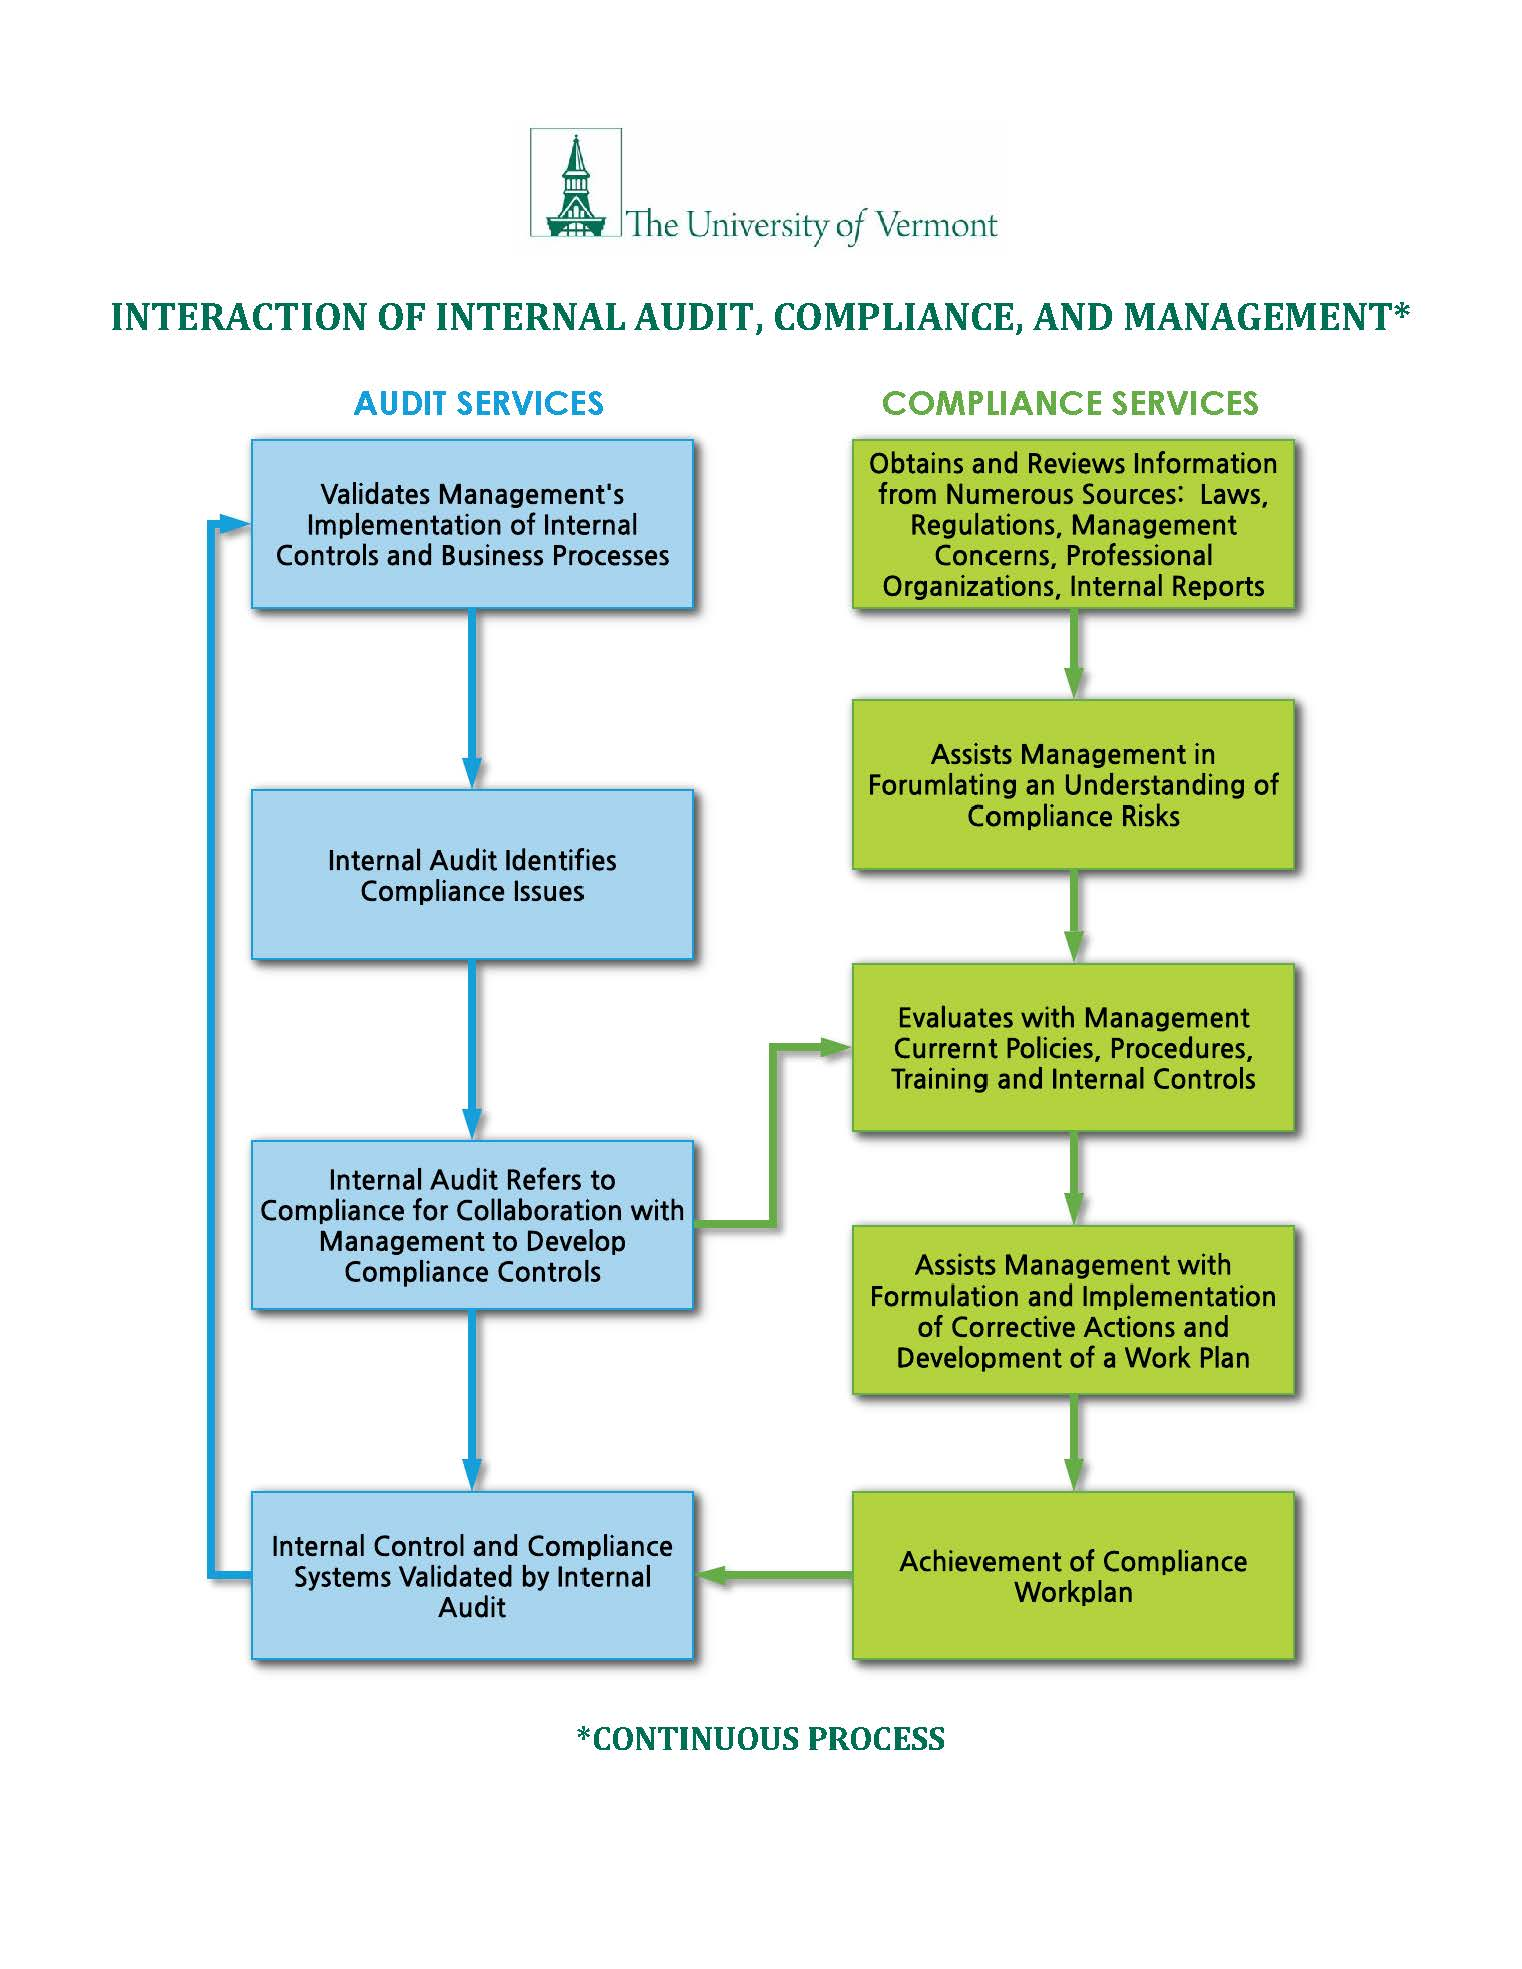 Flowchart of how Audit Services and Compliance Services work together.